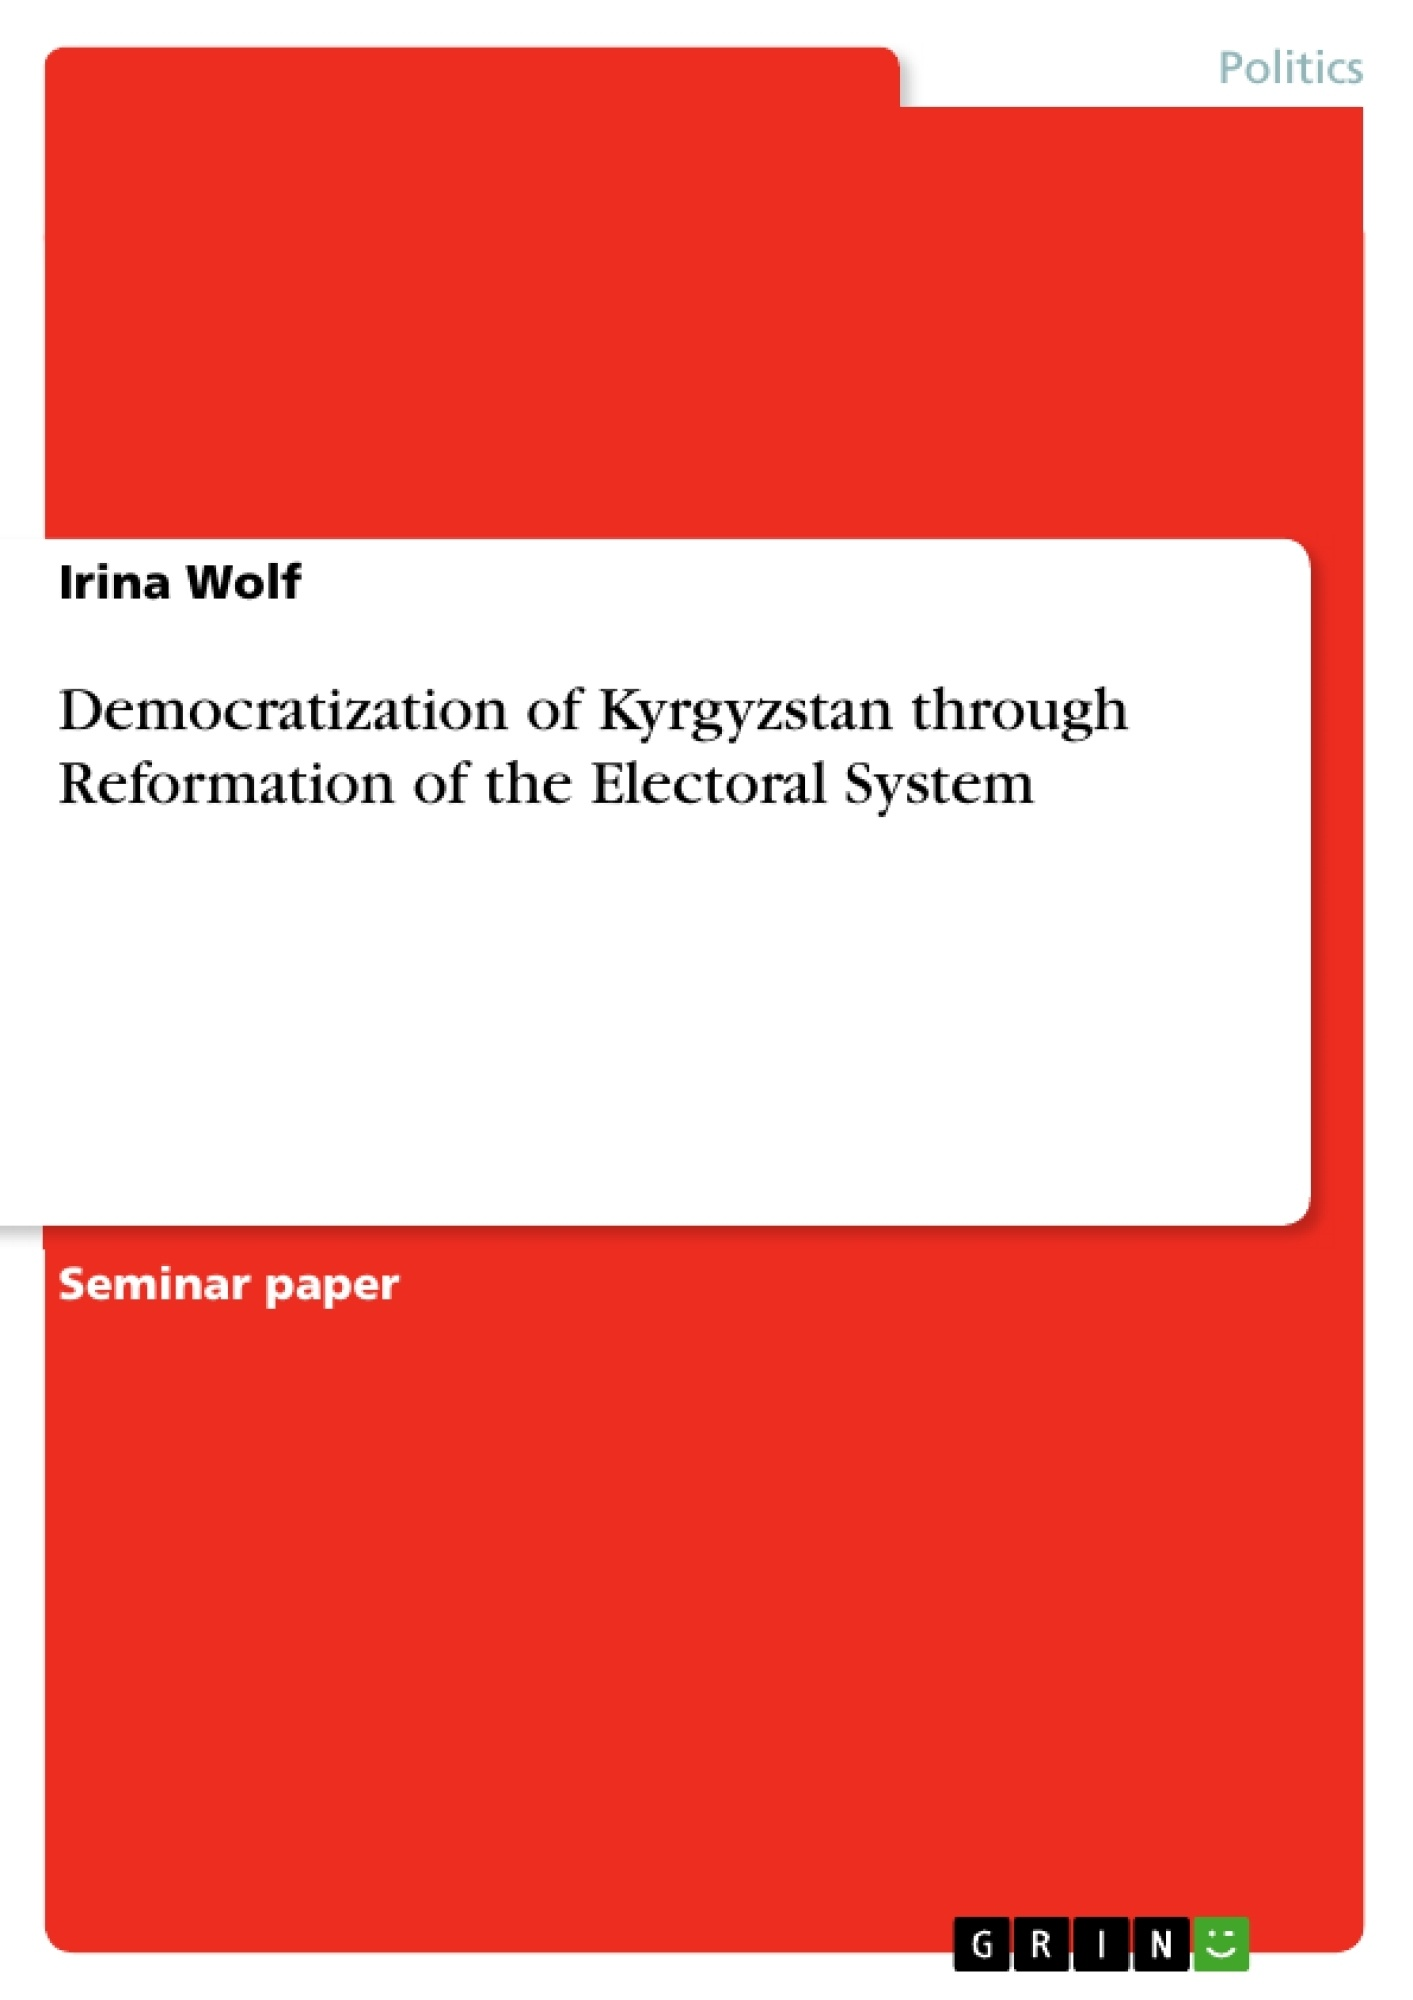 Title: Democratization of Kyrgyzstan through Reformation of the  Electoral System